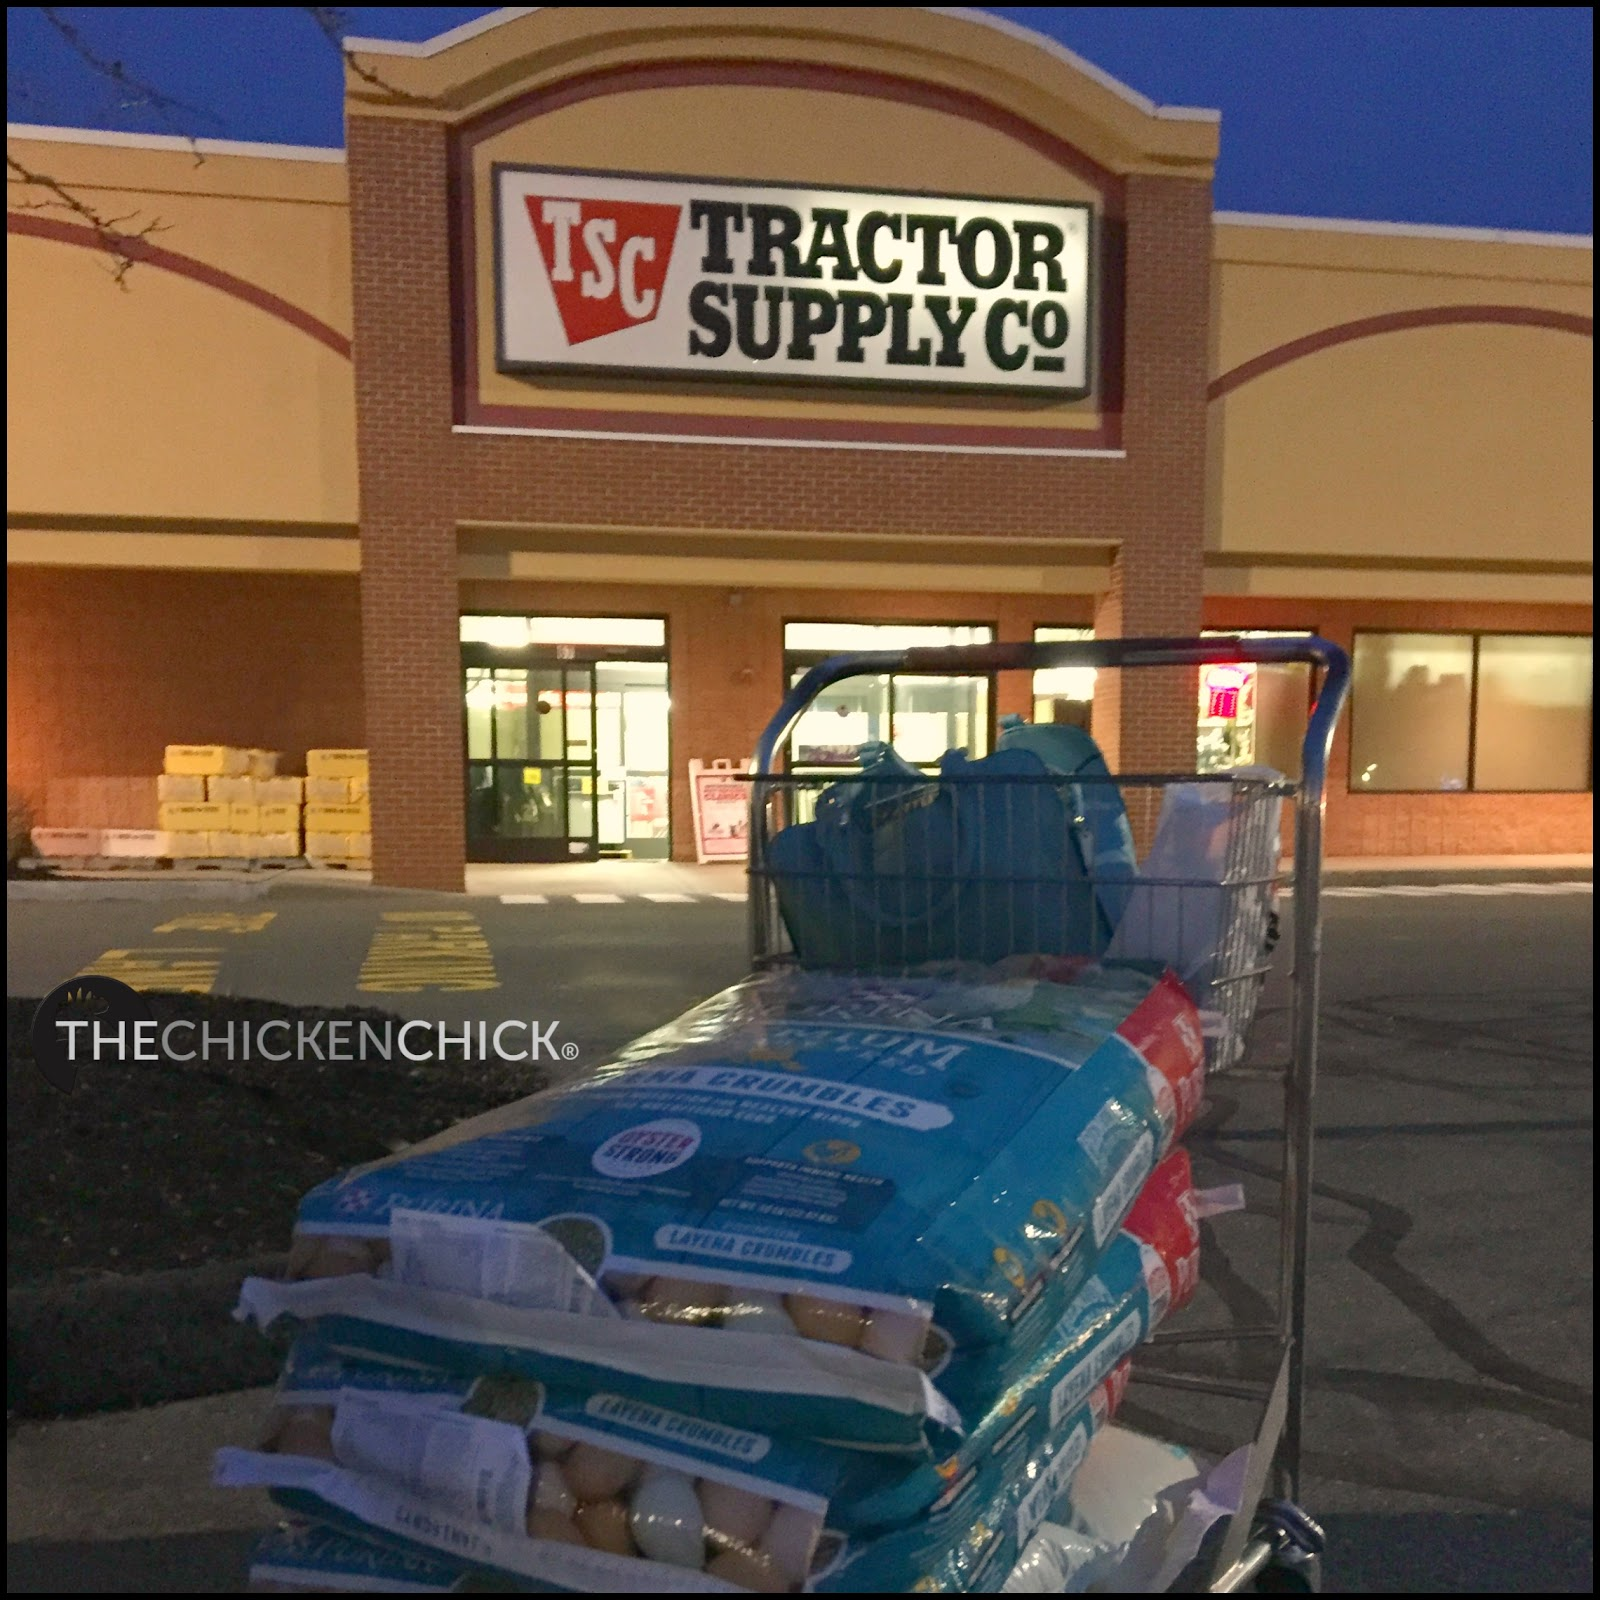 Tractor Supply: The Chicken Chick®: Buying Chickens To Start A Laying Flock